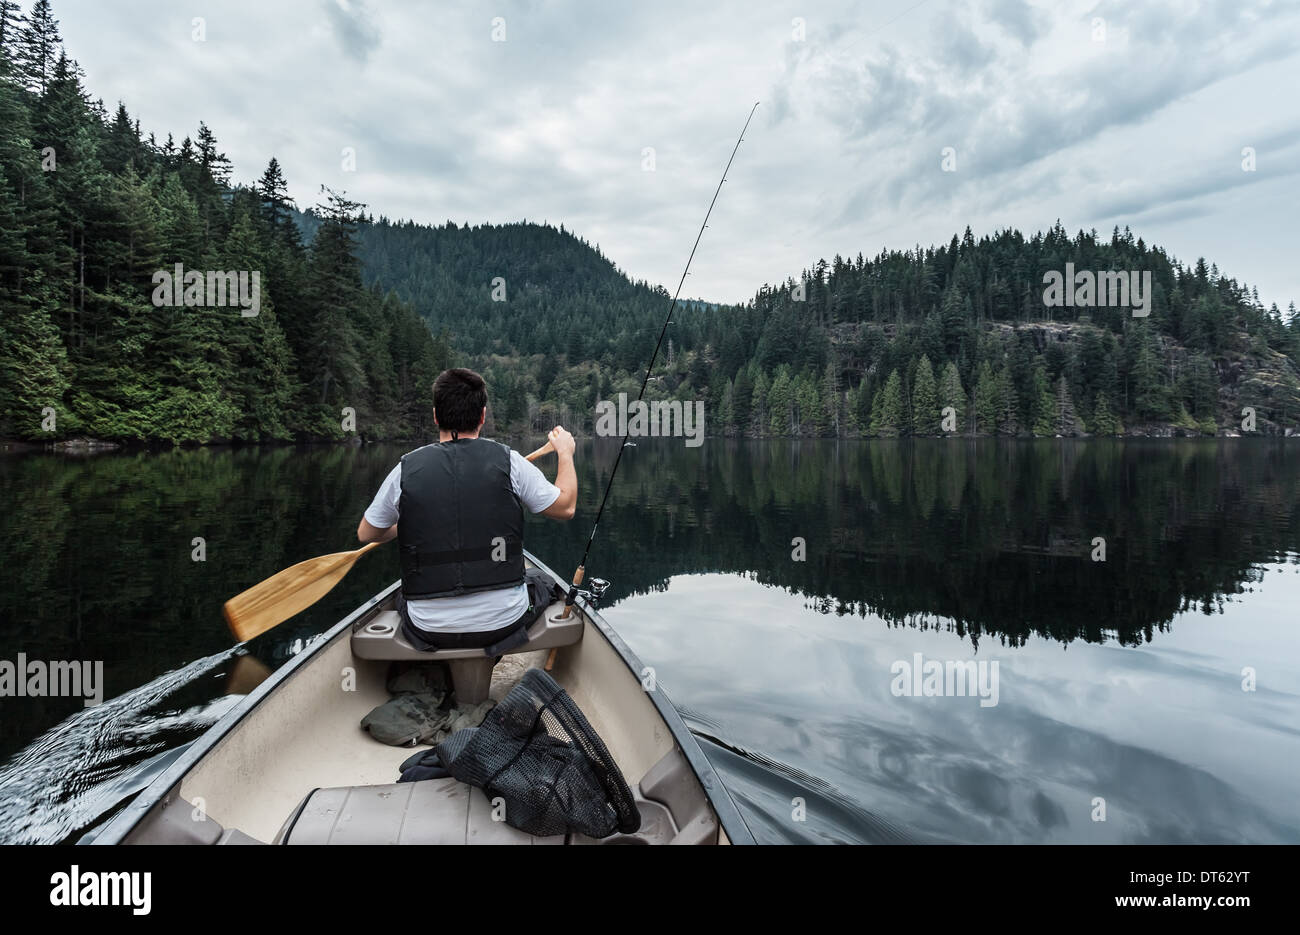 Jeune homme pêche, Buntzen Lake, British Columbia, Canada Photo Stock